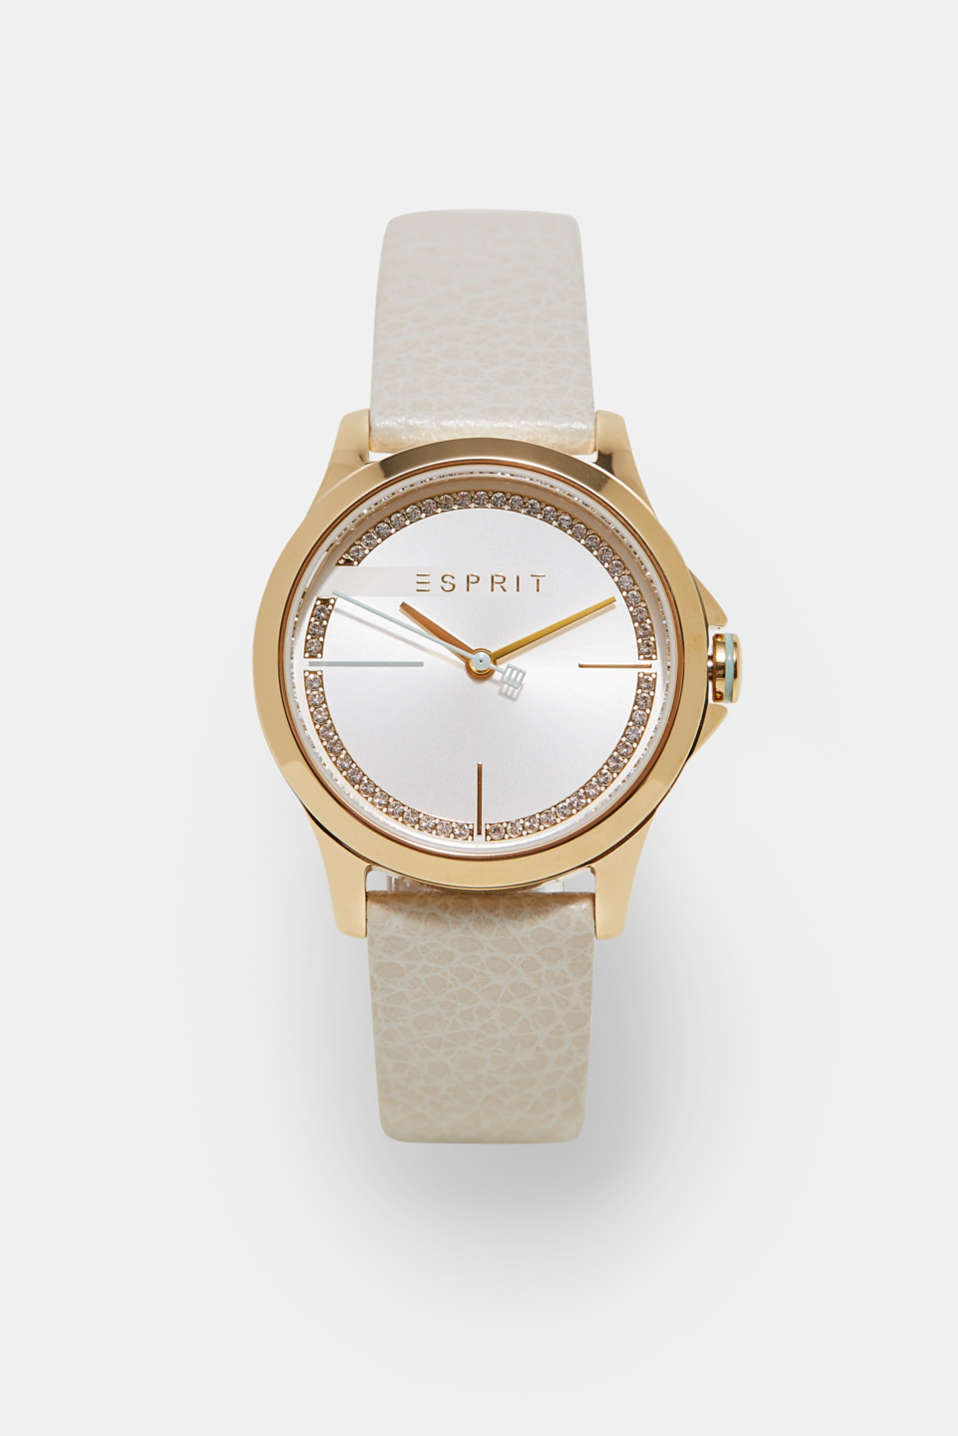 Esprit - Gold tone watch with leather strap